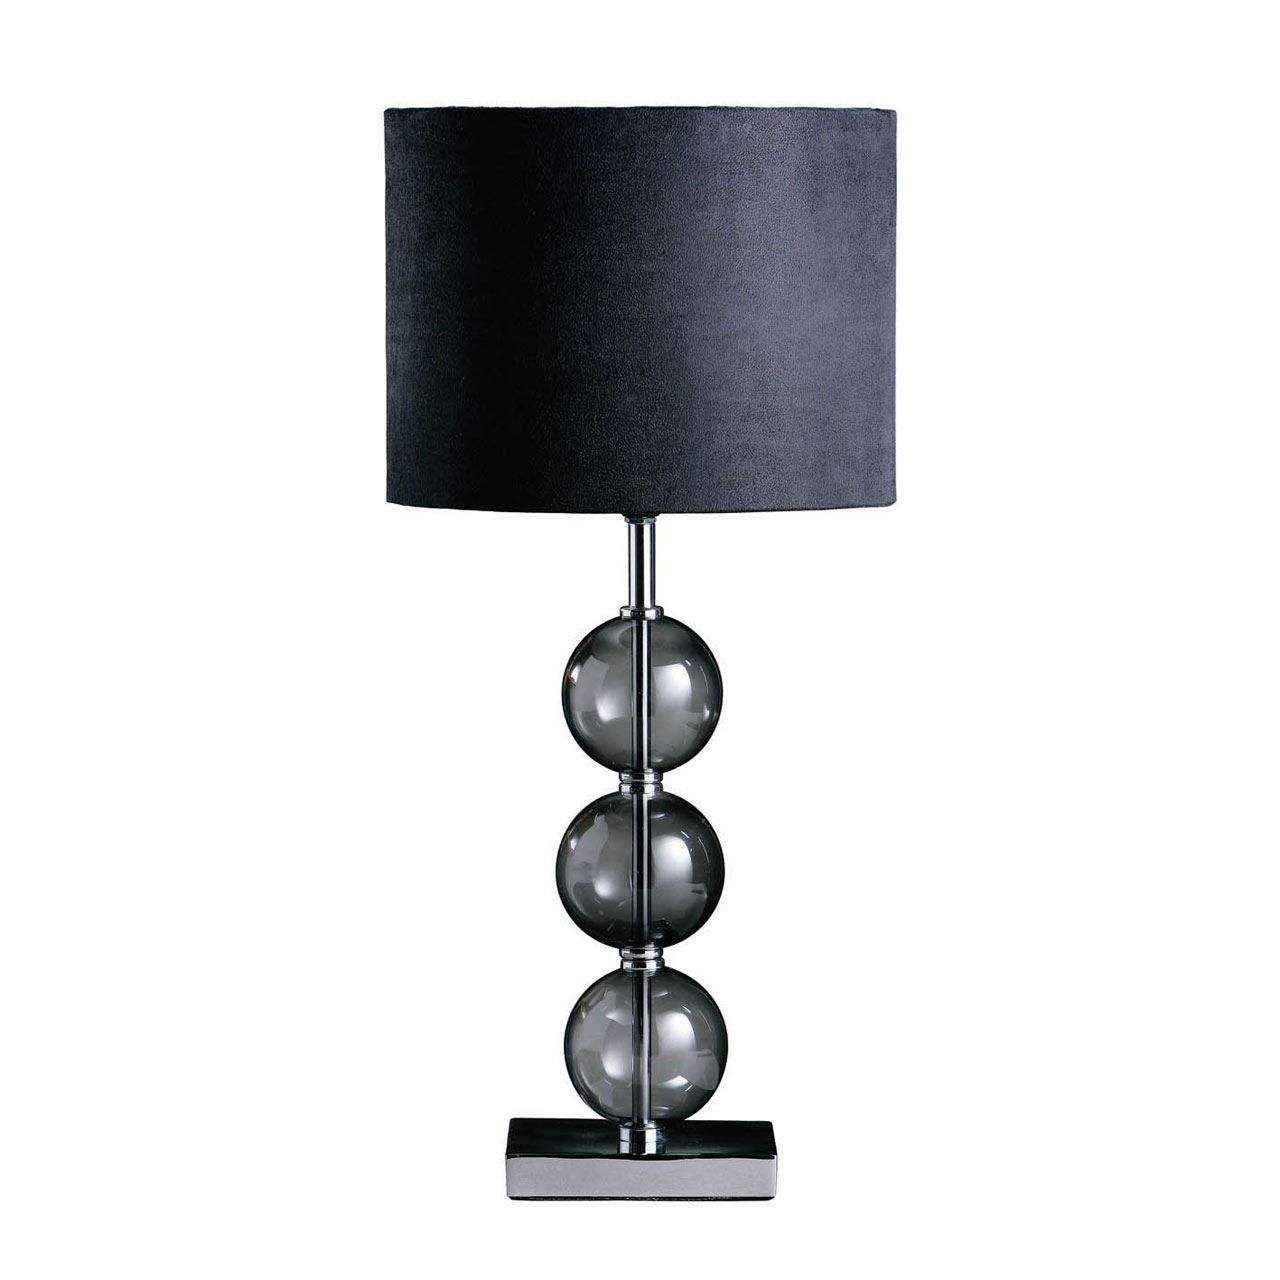 Mistro Table Lamp Black Suede Effect Shade Feature Chrome Base